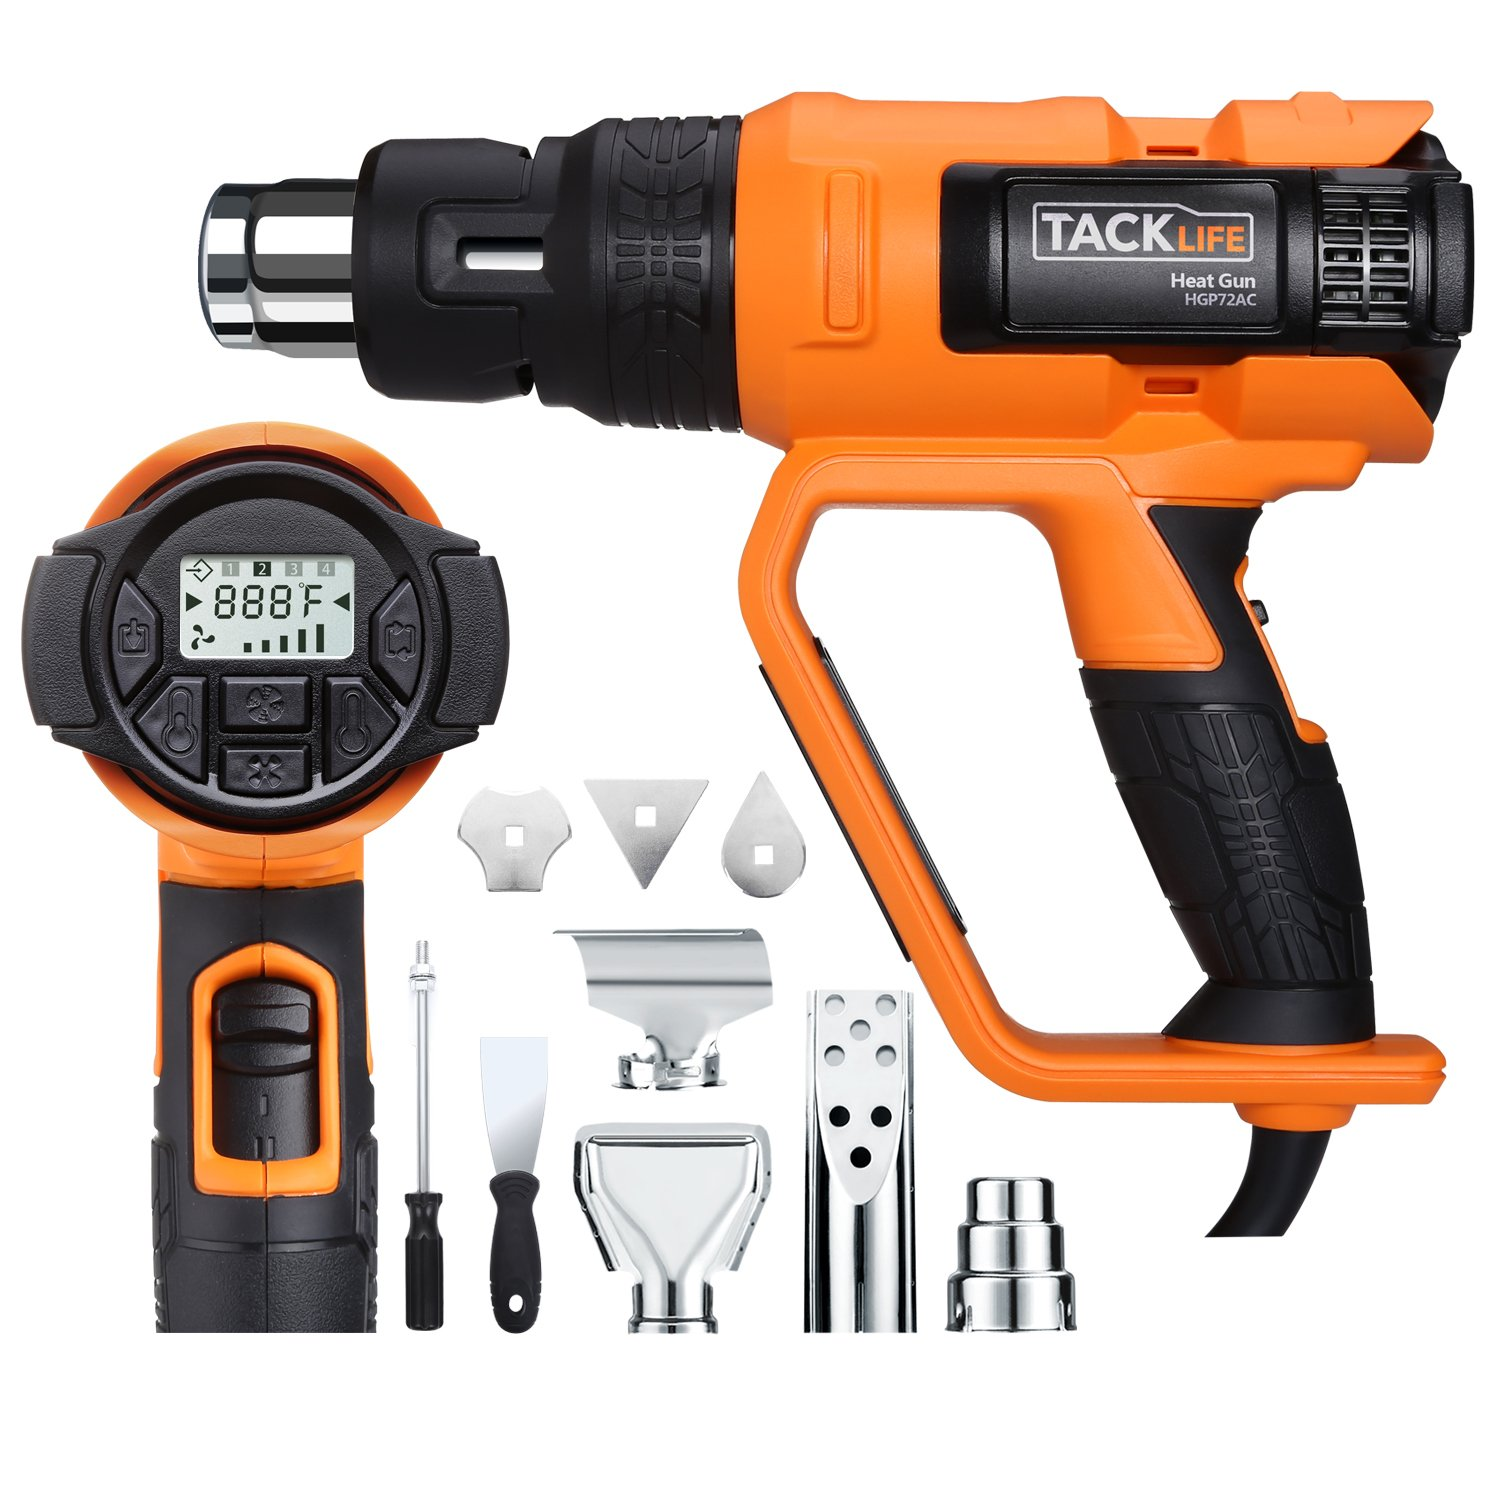 Heat Gun, Tacklife HGP72AC 1700W Heavy Duty Hot Air Gun with Large LCD Display, Variable Temp Memory Settings and Wind Speed Adjustment, 120V 60Hz Electric Heat Gun for Stripping Paint, Warming Pipes